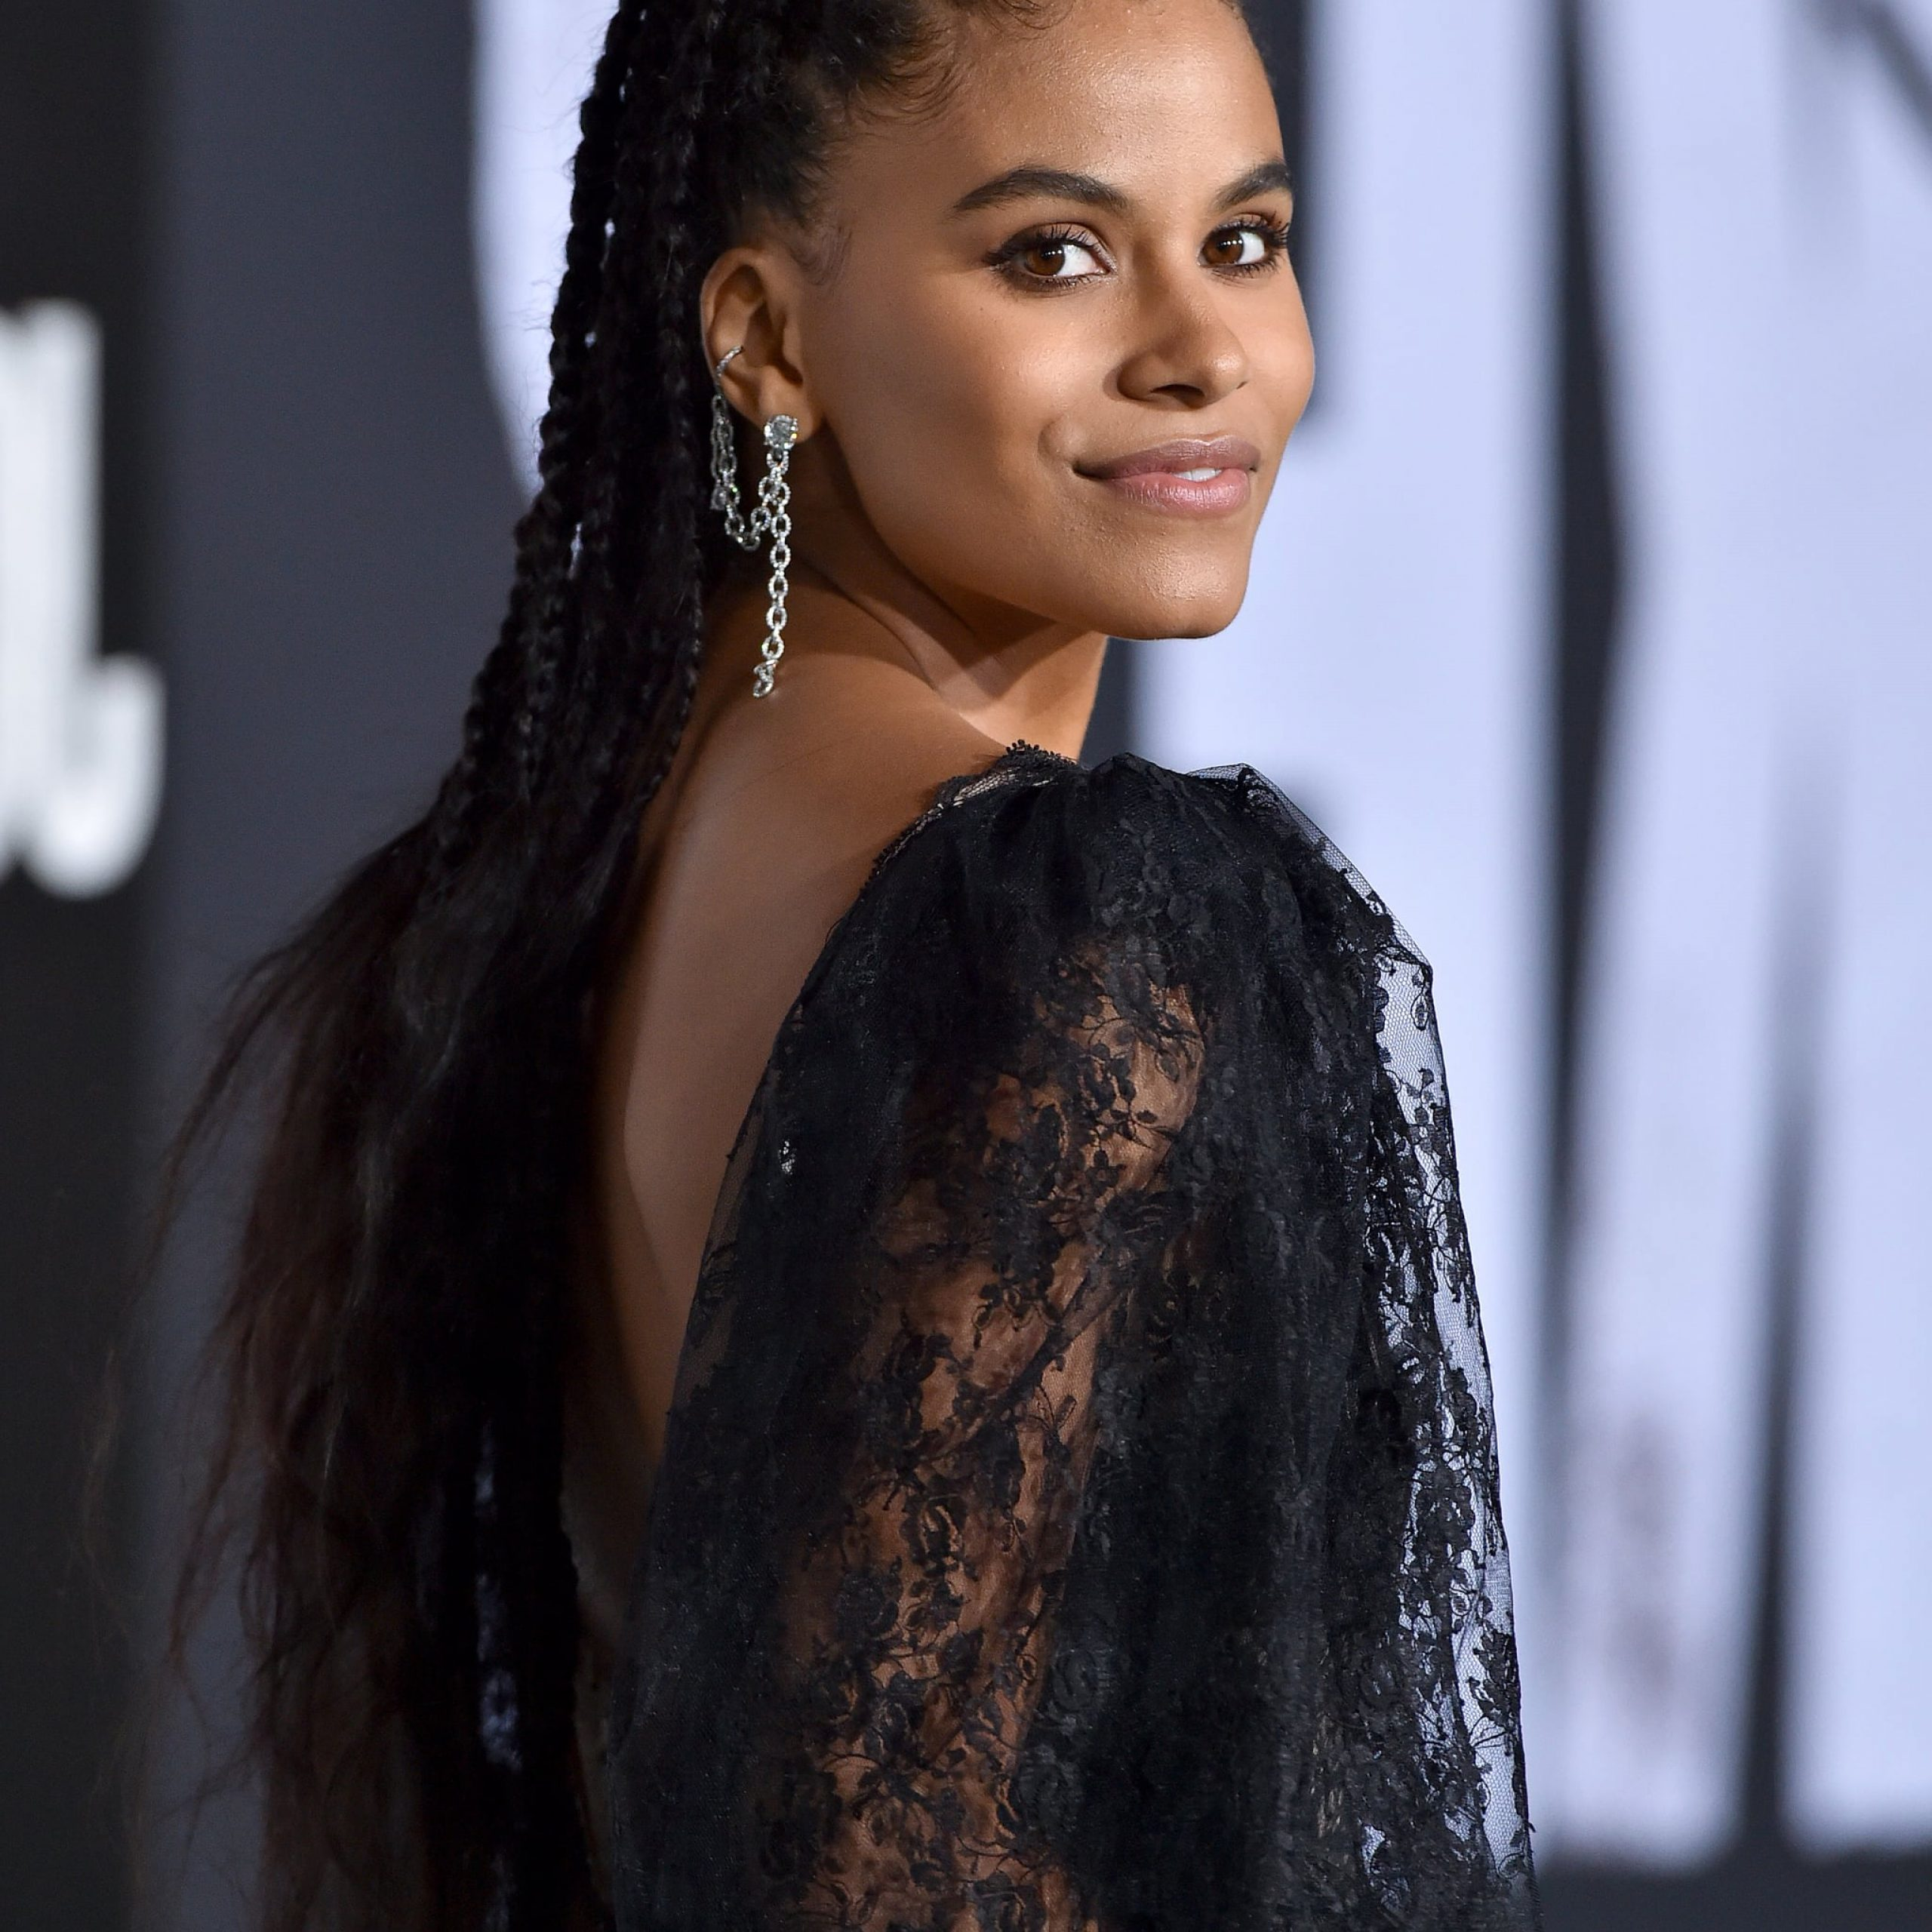 Zazie Beetz's Braided High Ponytail (View 12 of 20)